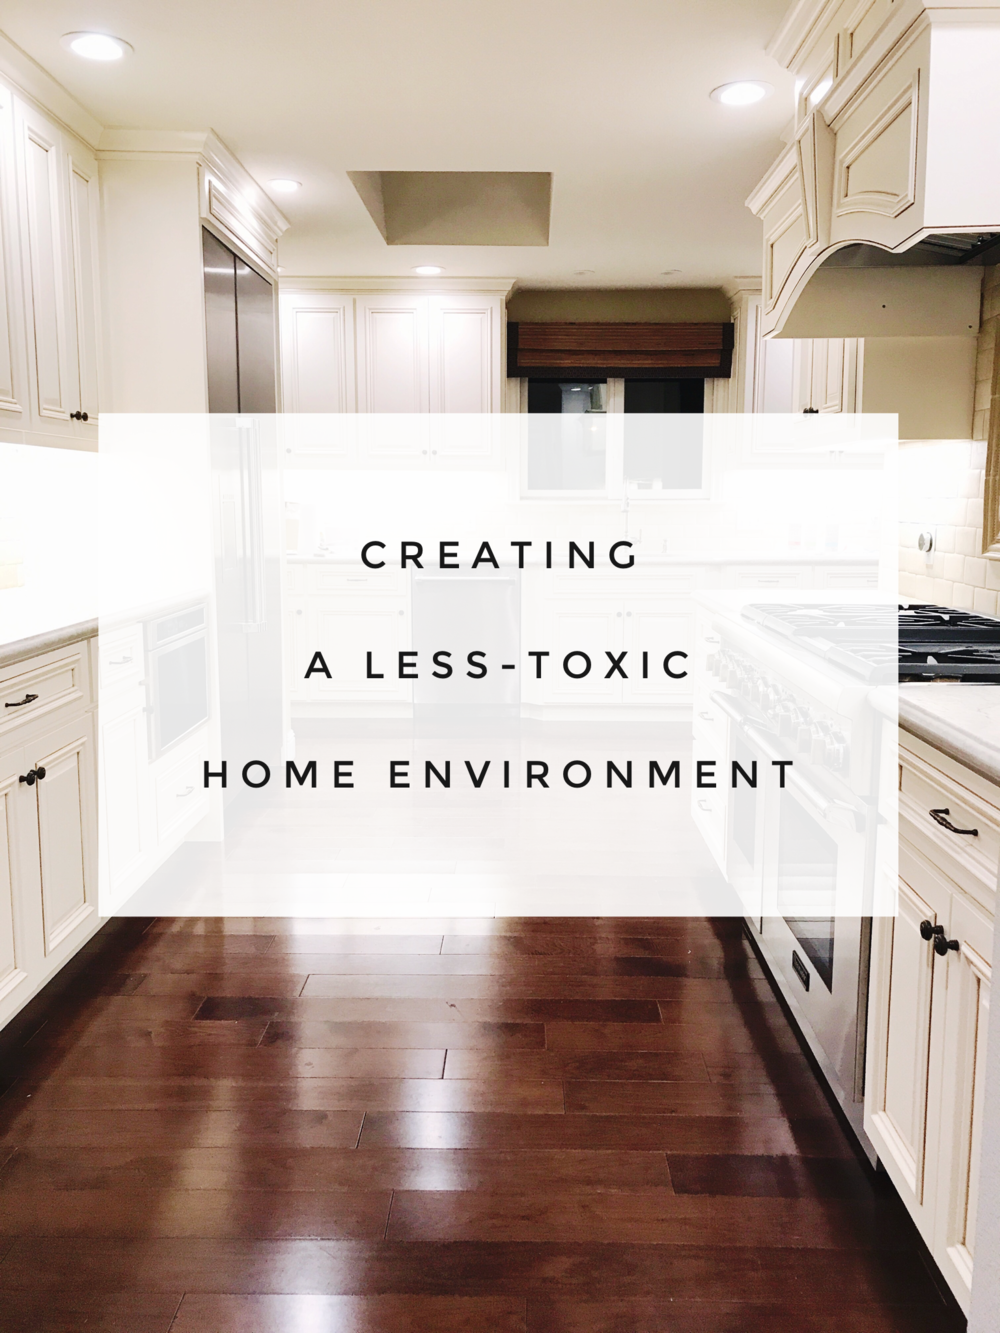 Creating a LessToxic Home Environment Home, New homes